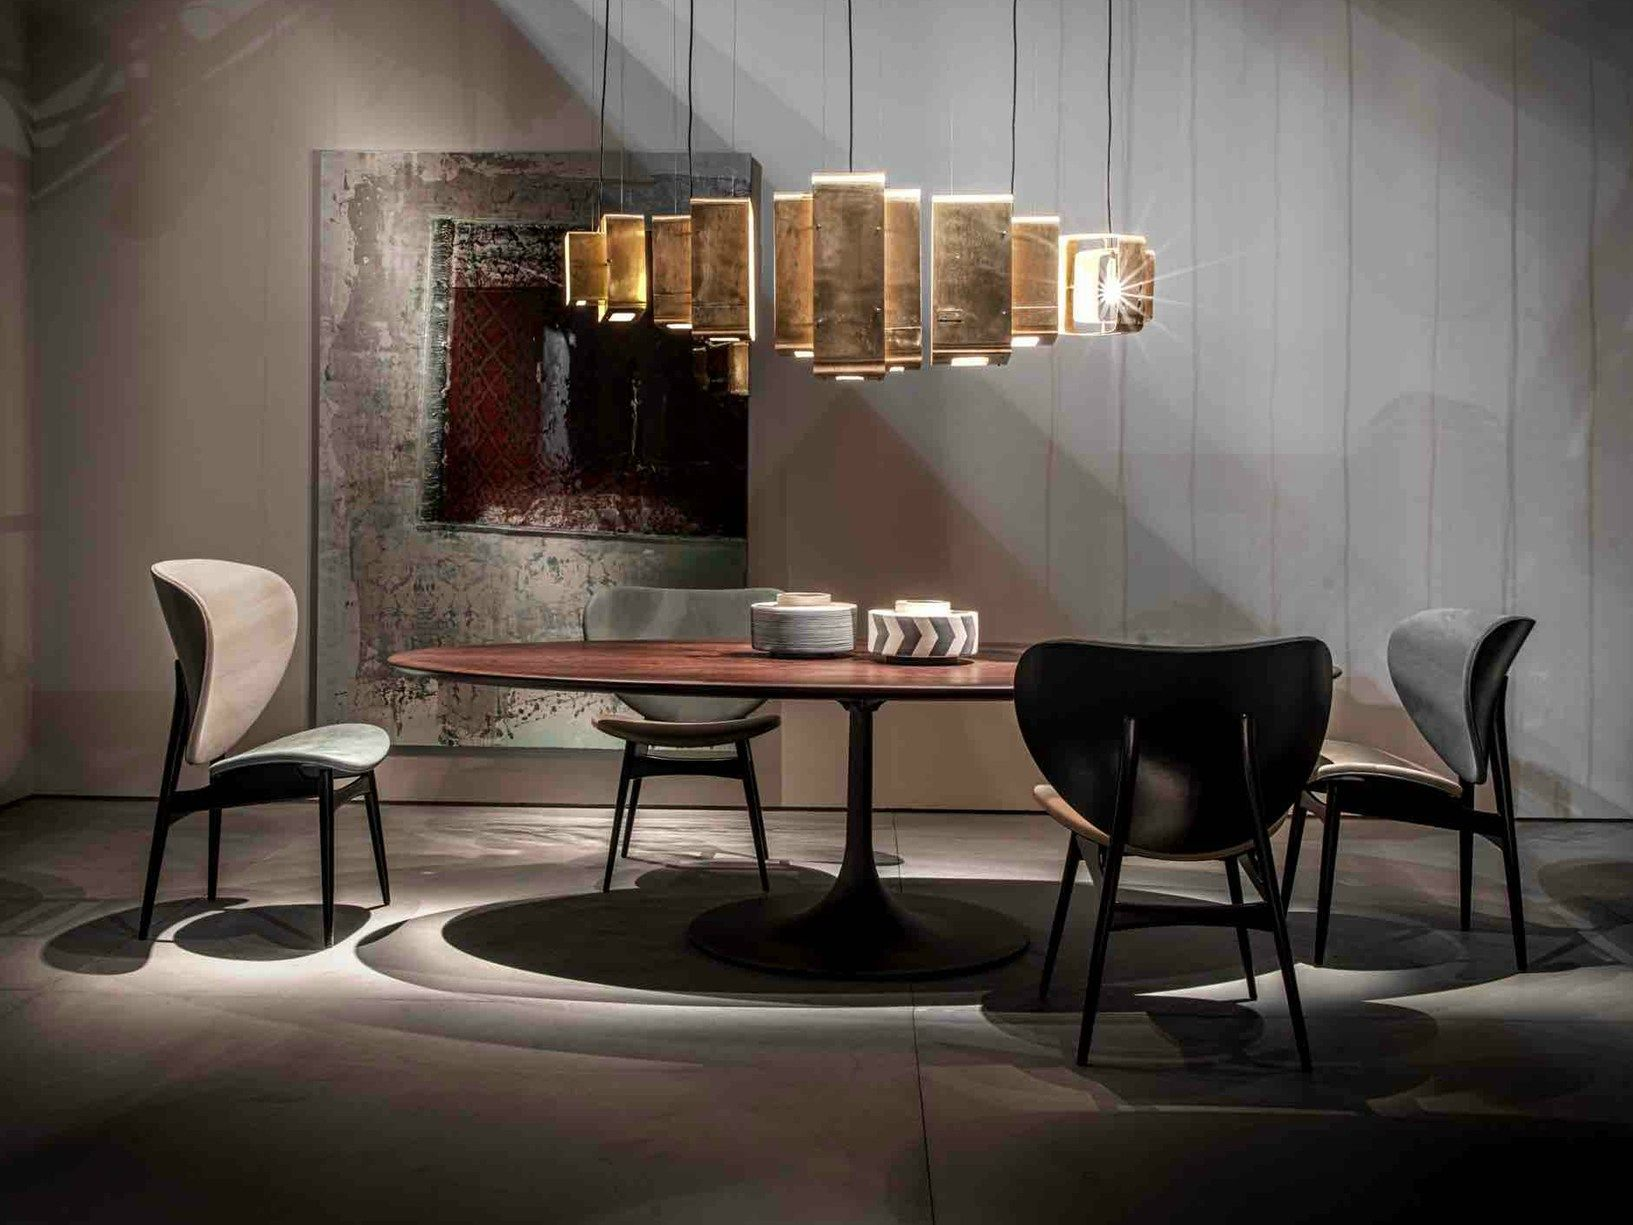 Materiality And Minimalist Aesthetic. Baxter At ISaloni